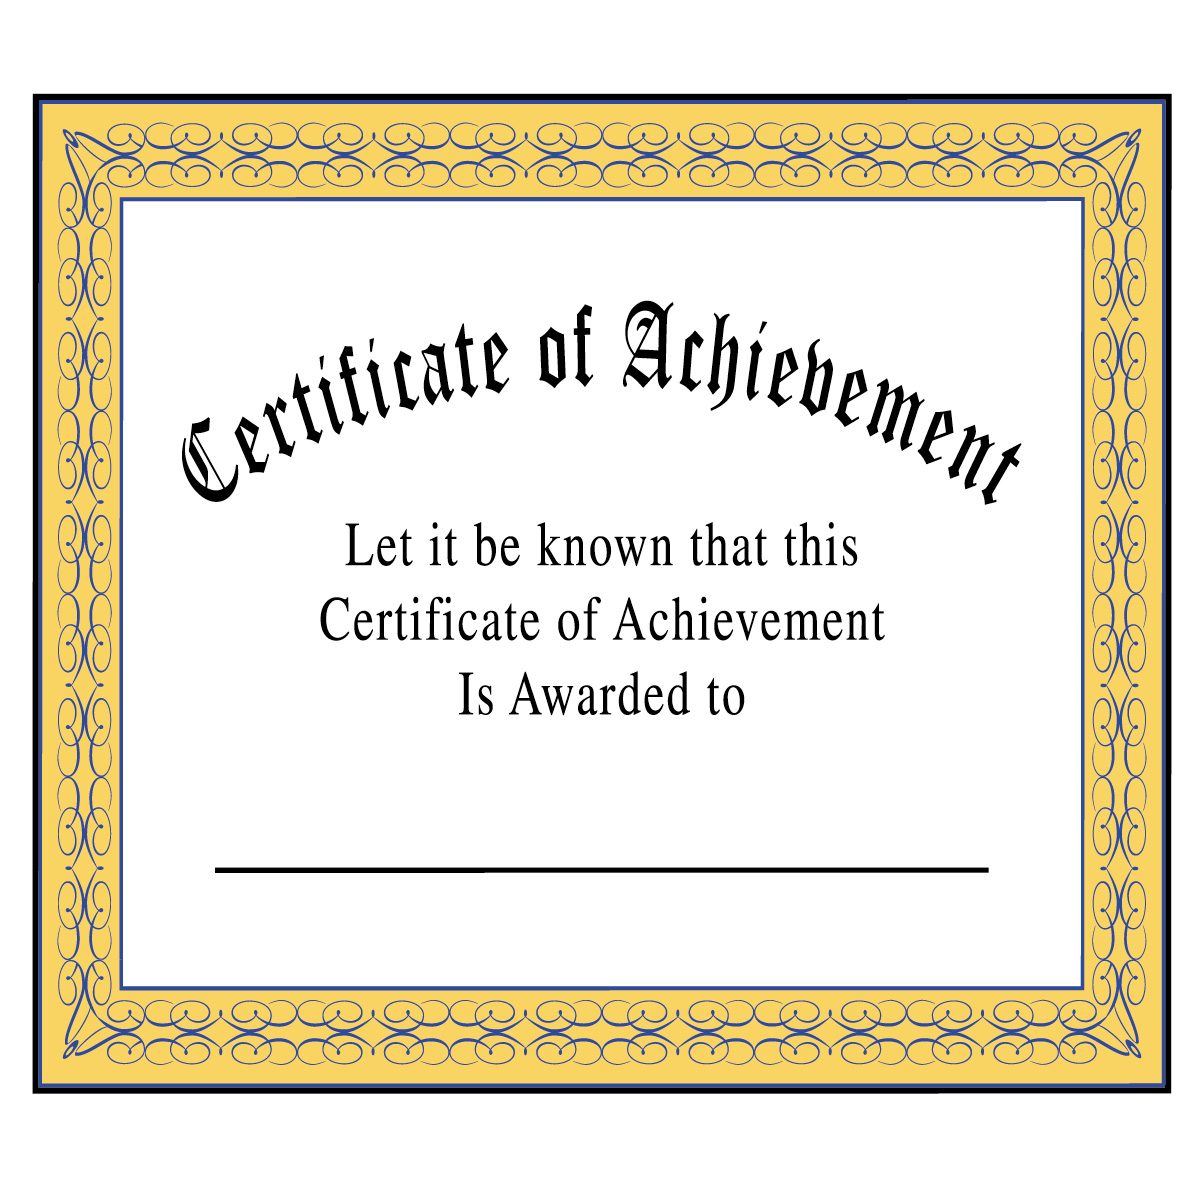 Free Certificate Cliparts, Download Free Clip Art, Free Clip Art on.